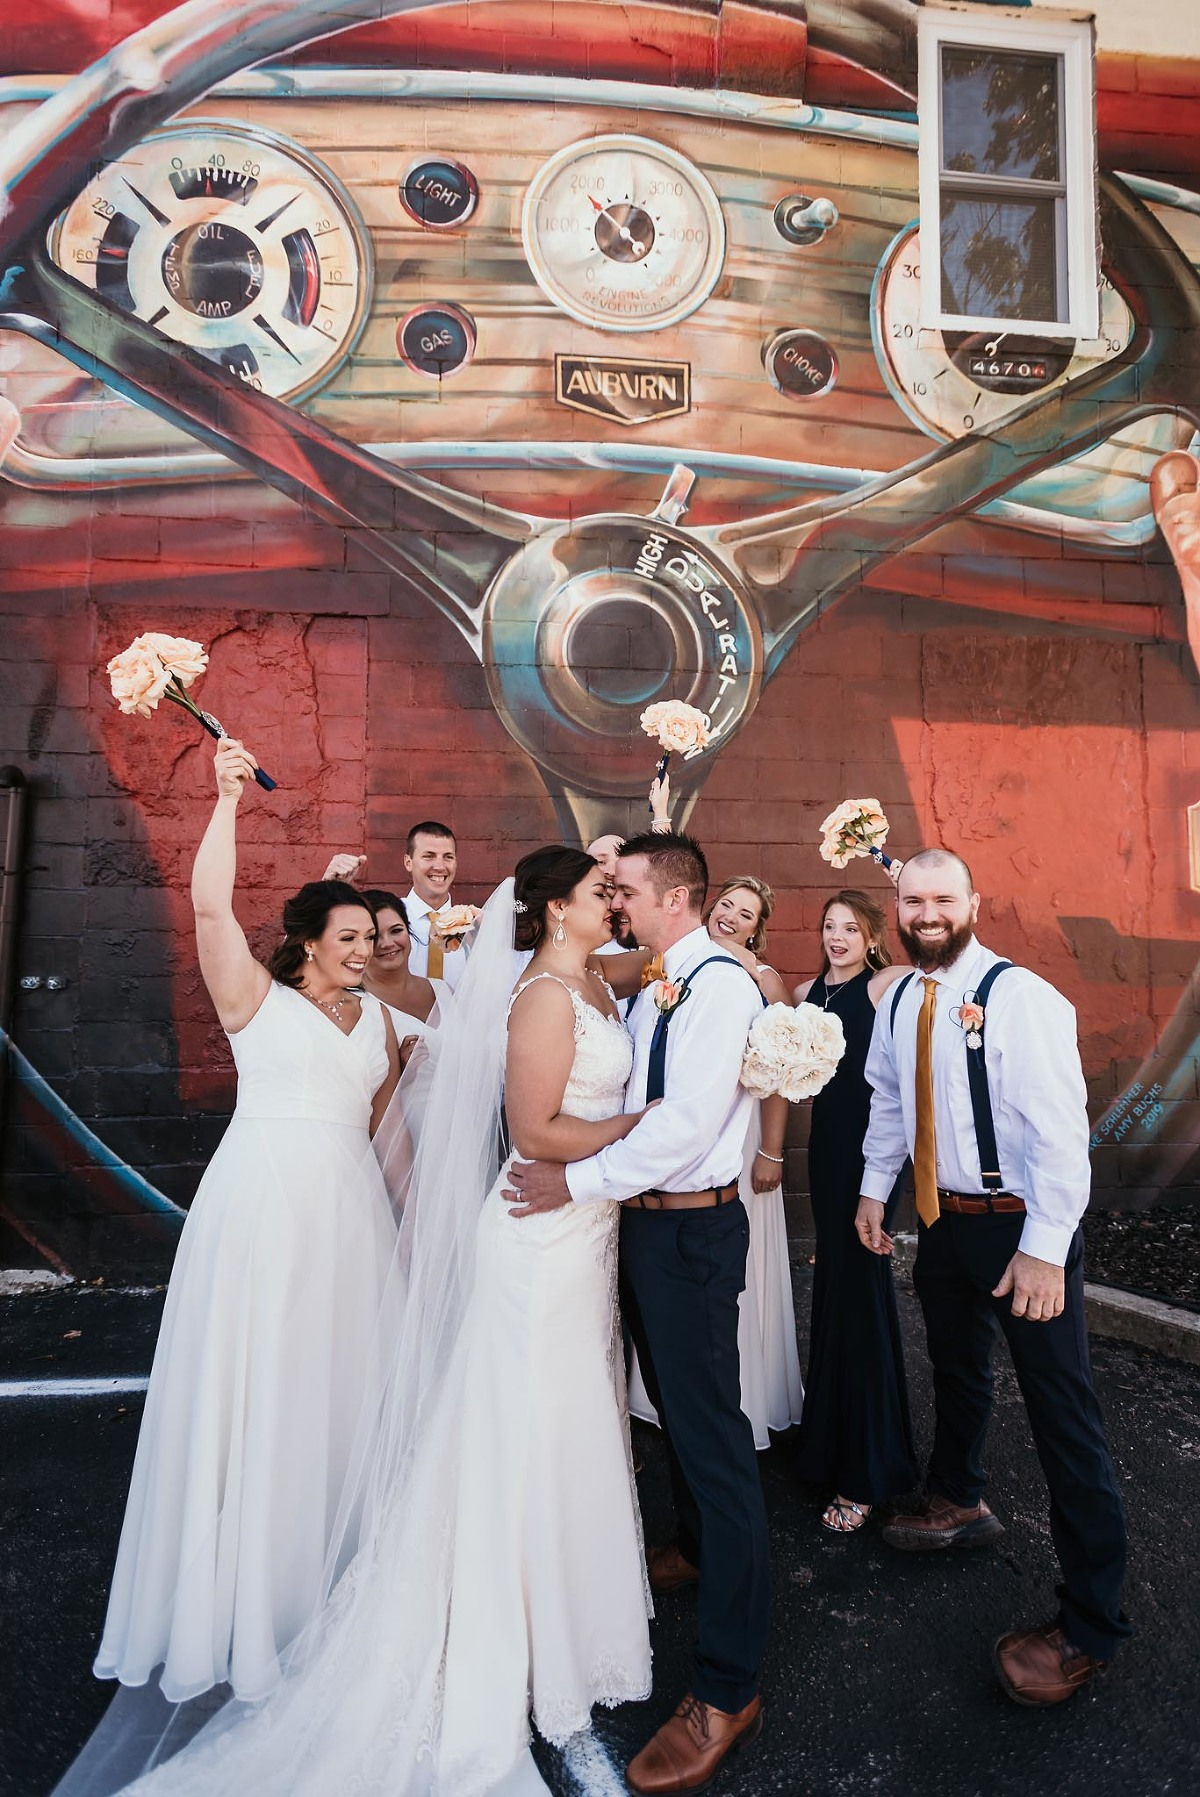 Bridal party cheering as bride and groom kiss in front of art mural in downtown Auburn, Indiana by Kasey Wallace Photography